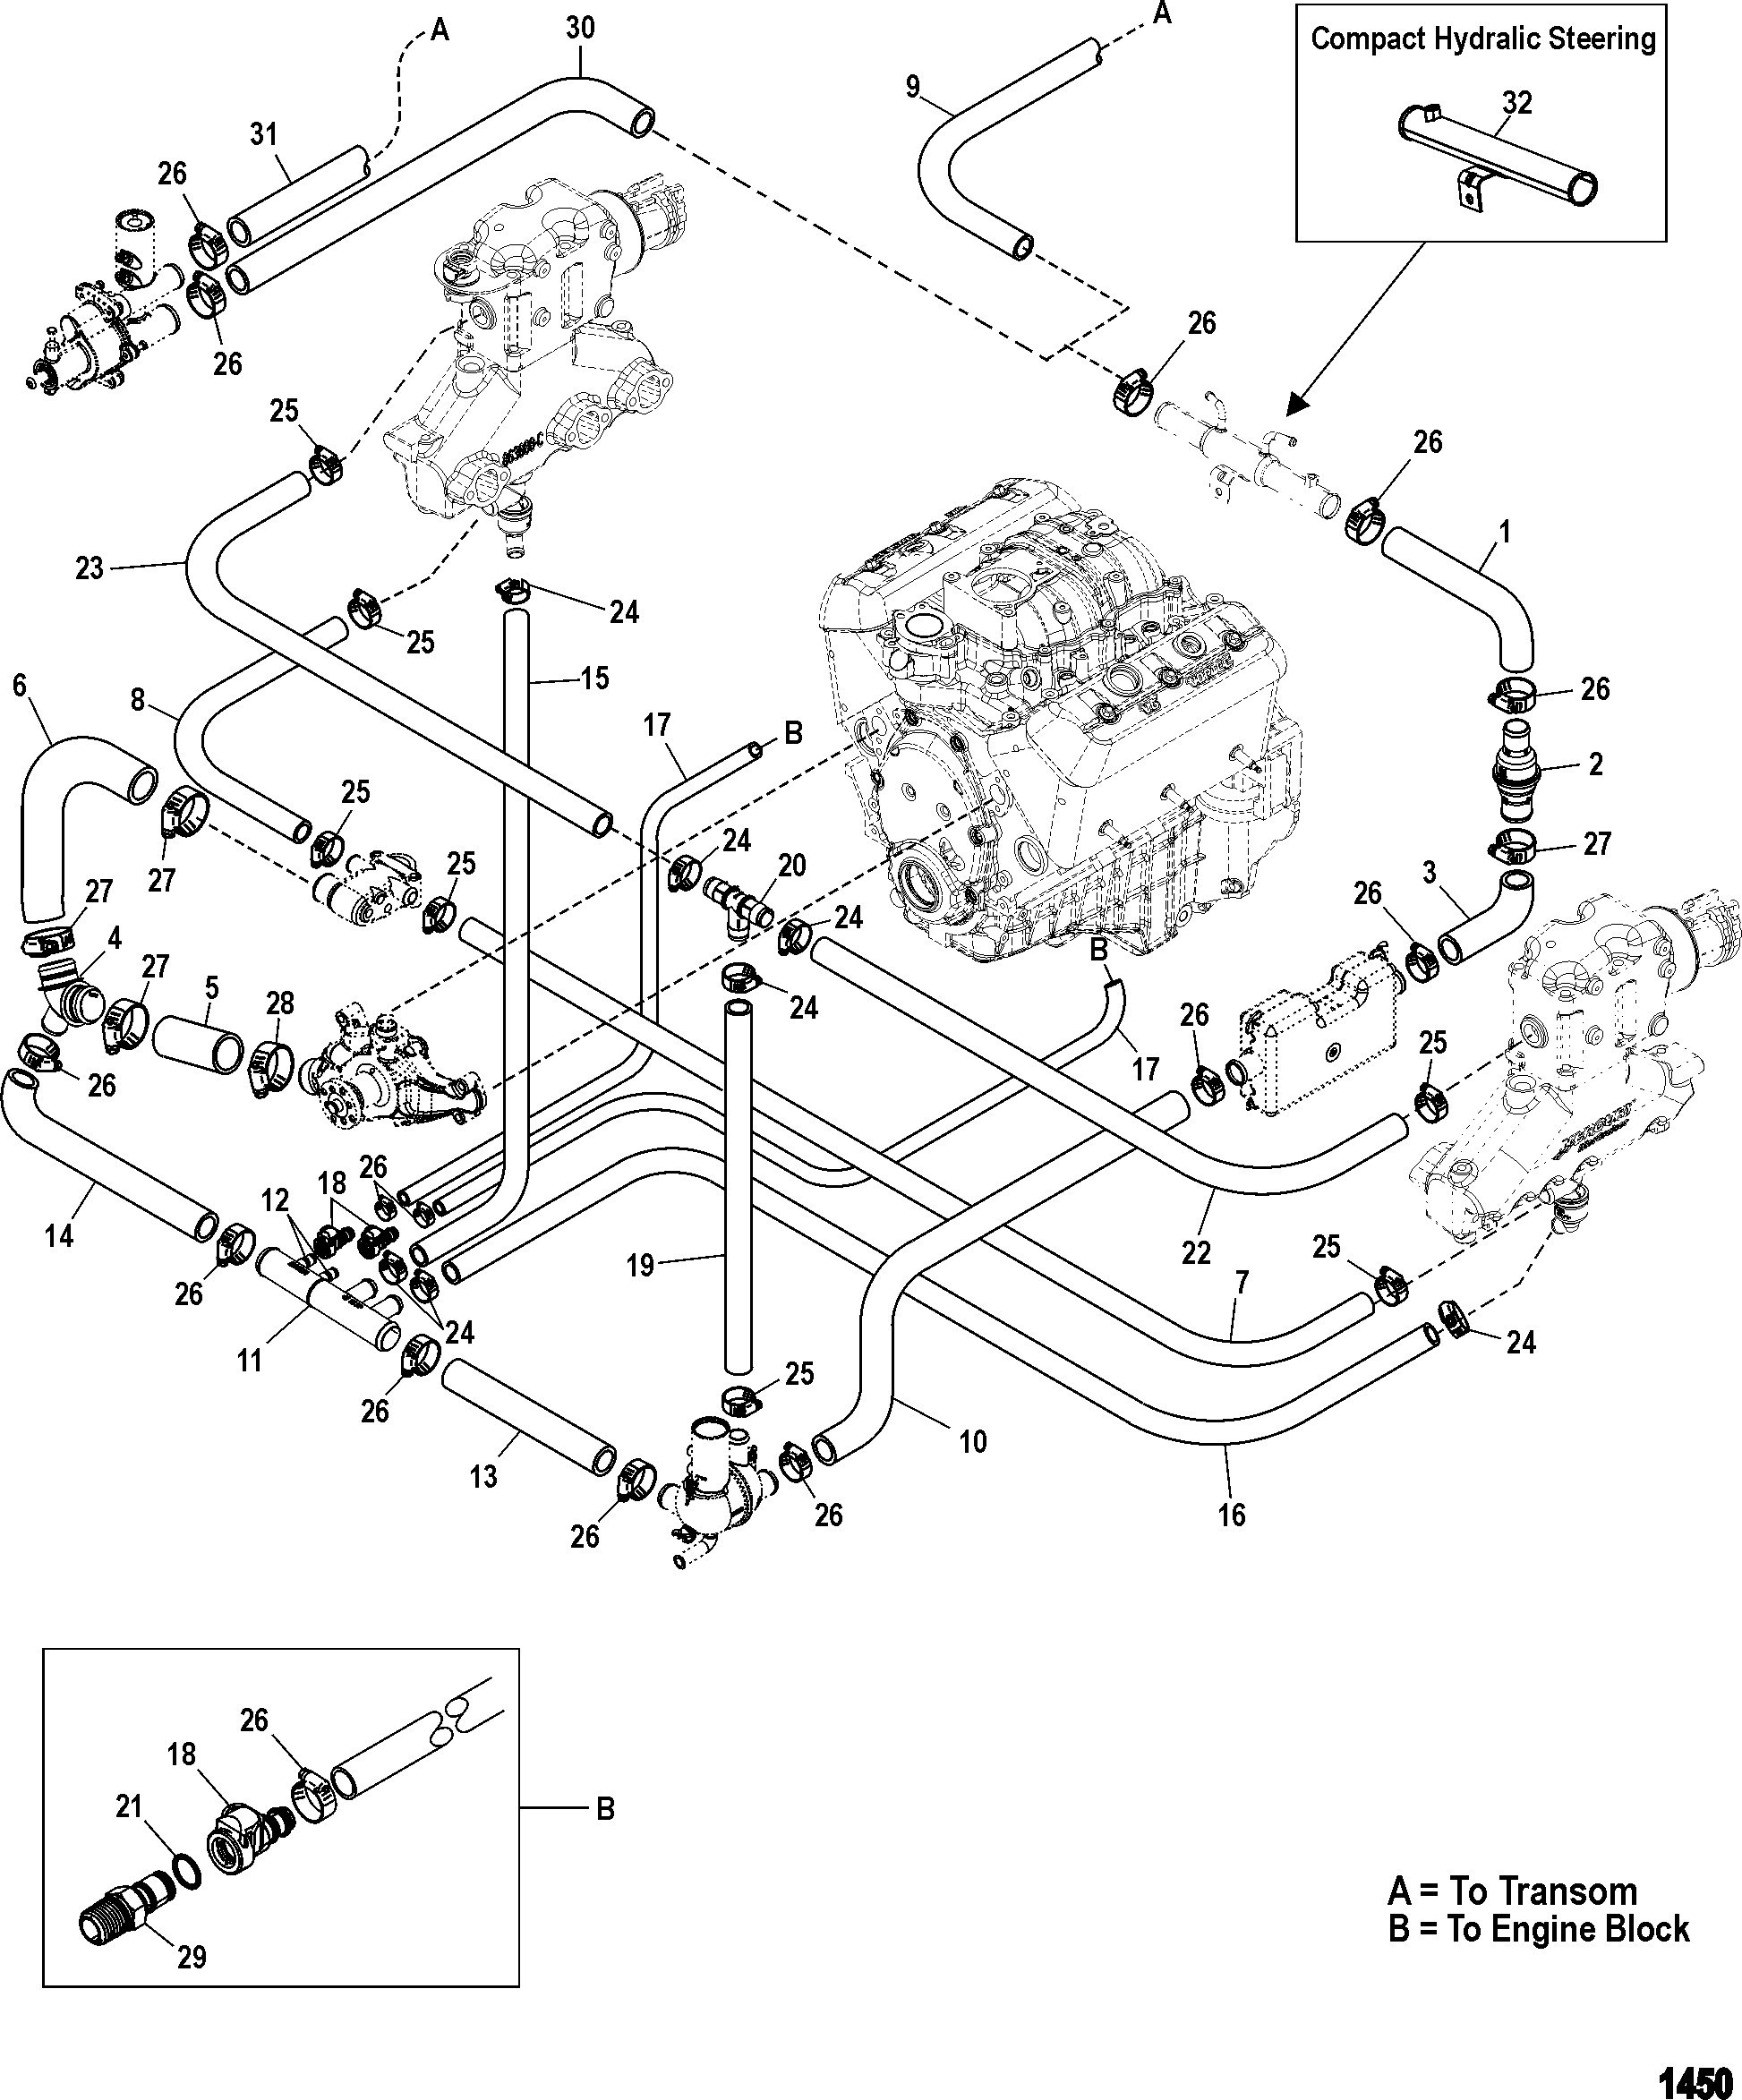 4 3 Engine Coolant Diagram Schematics Wiring Diagrams 1968 Honda Cb V6 U2022 Rh Schoosretailstores Com Car Heating System